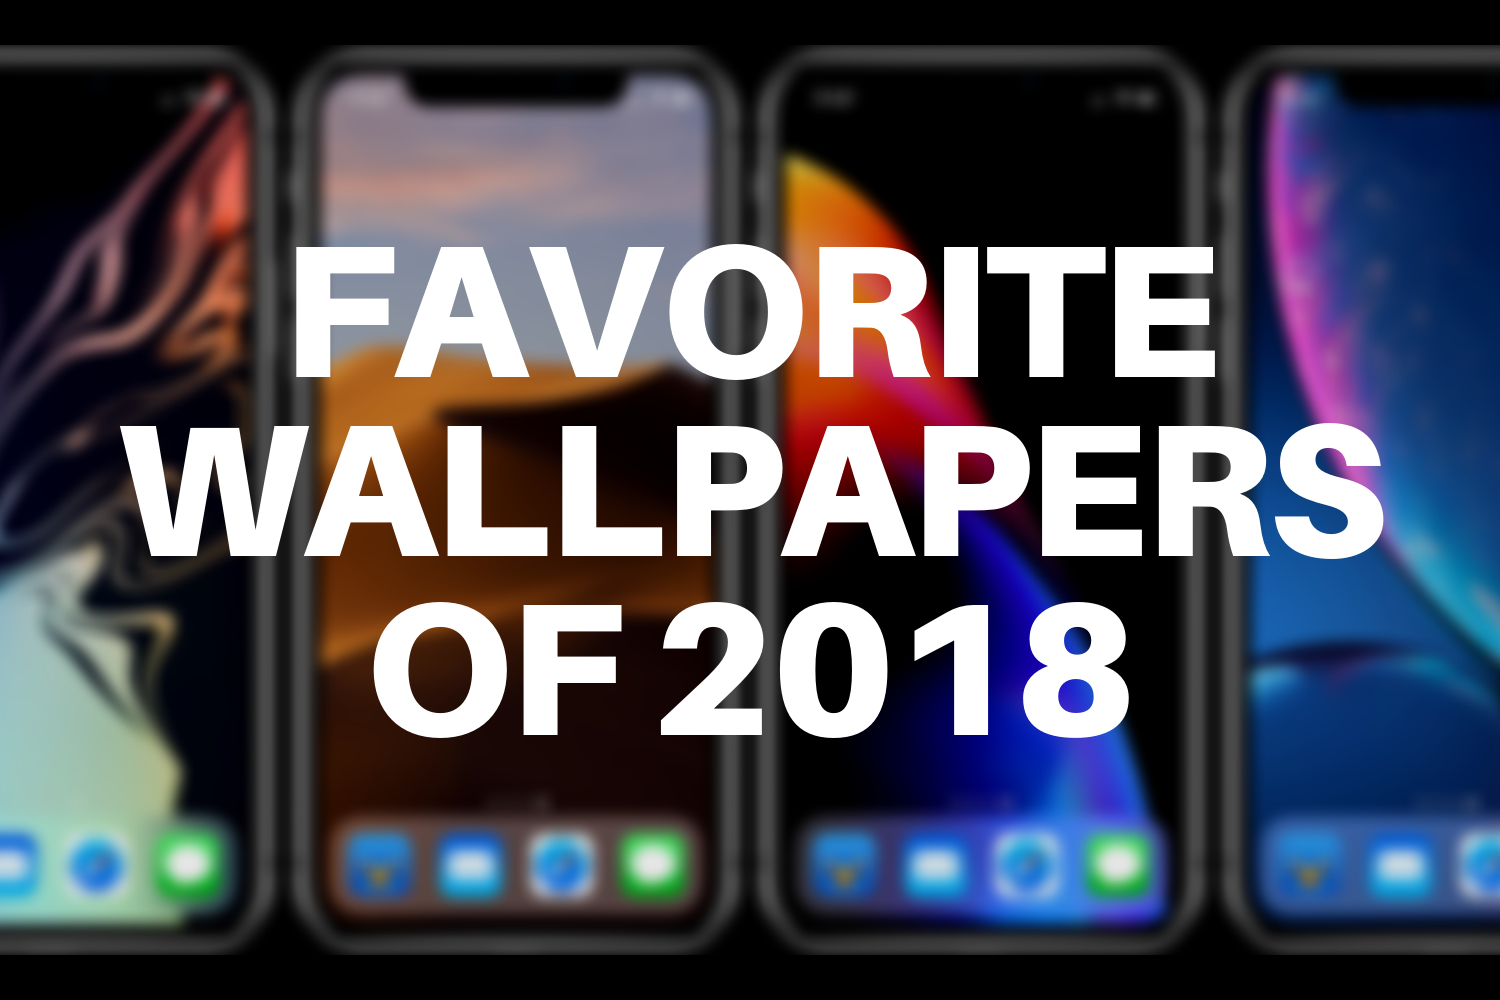 Your Favorite Wallpapers Of 2018